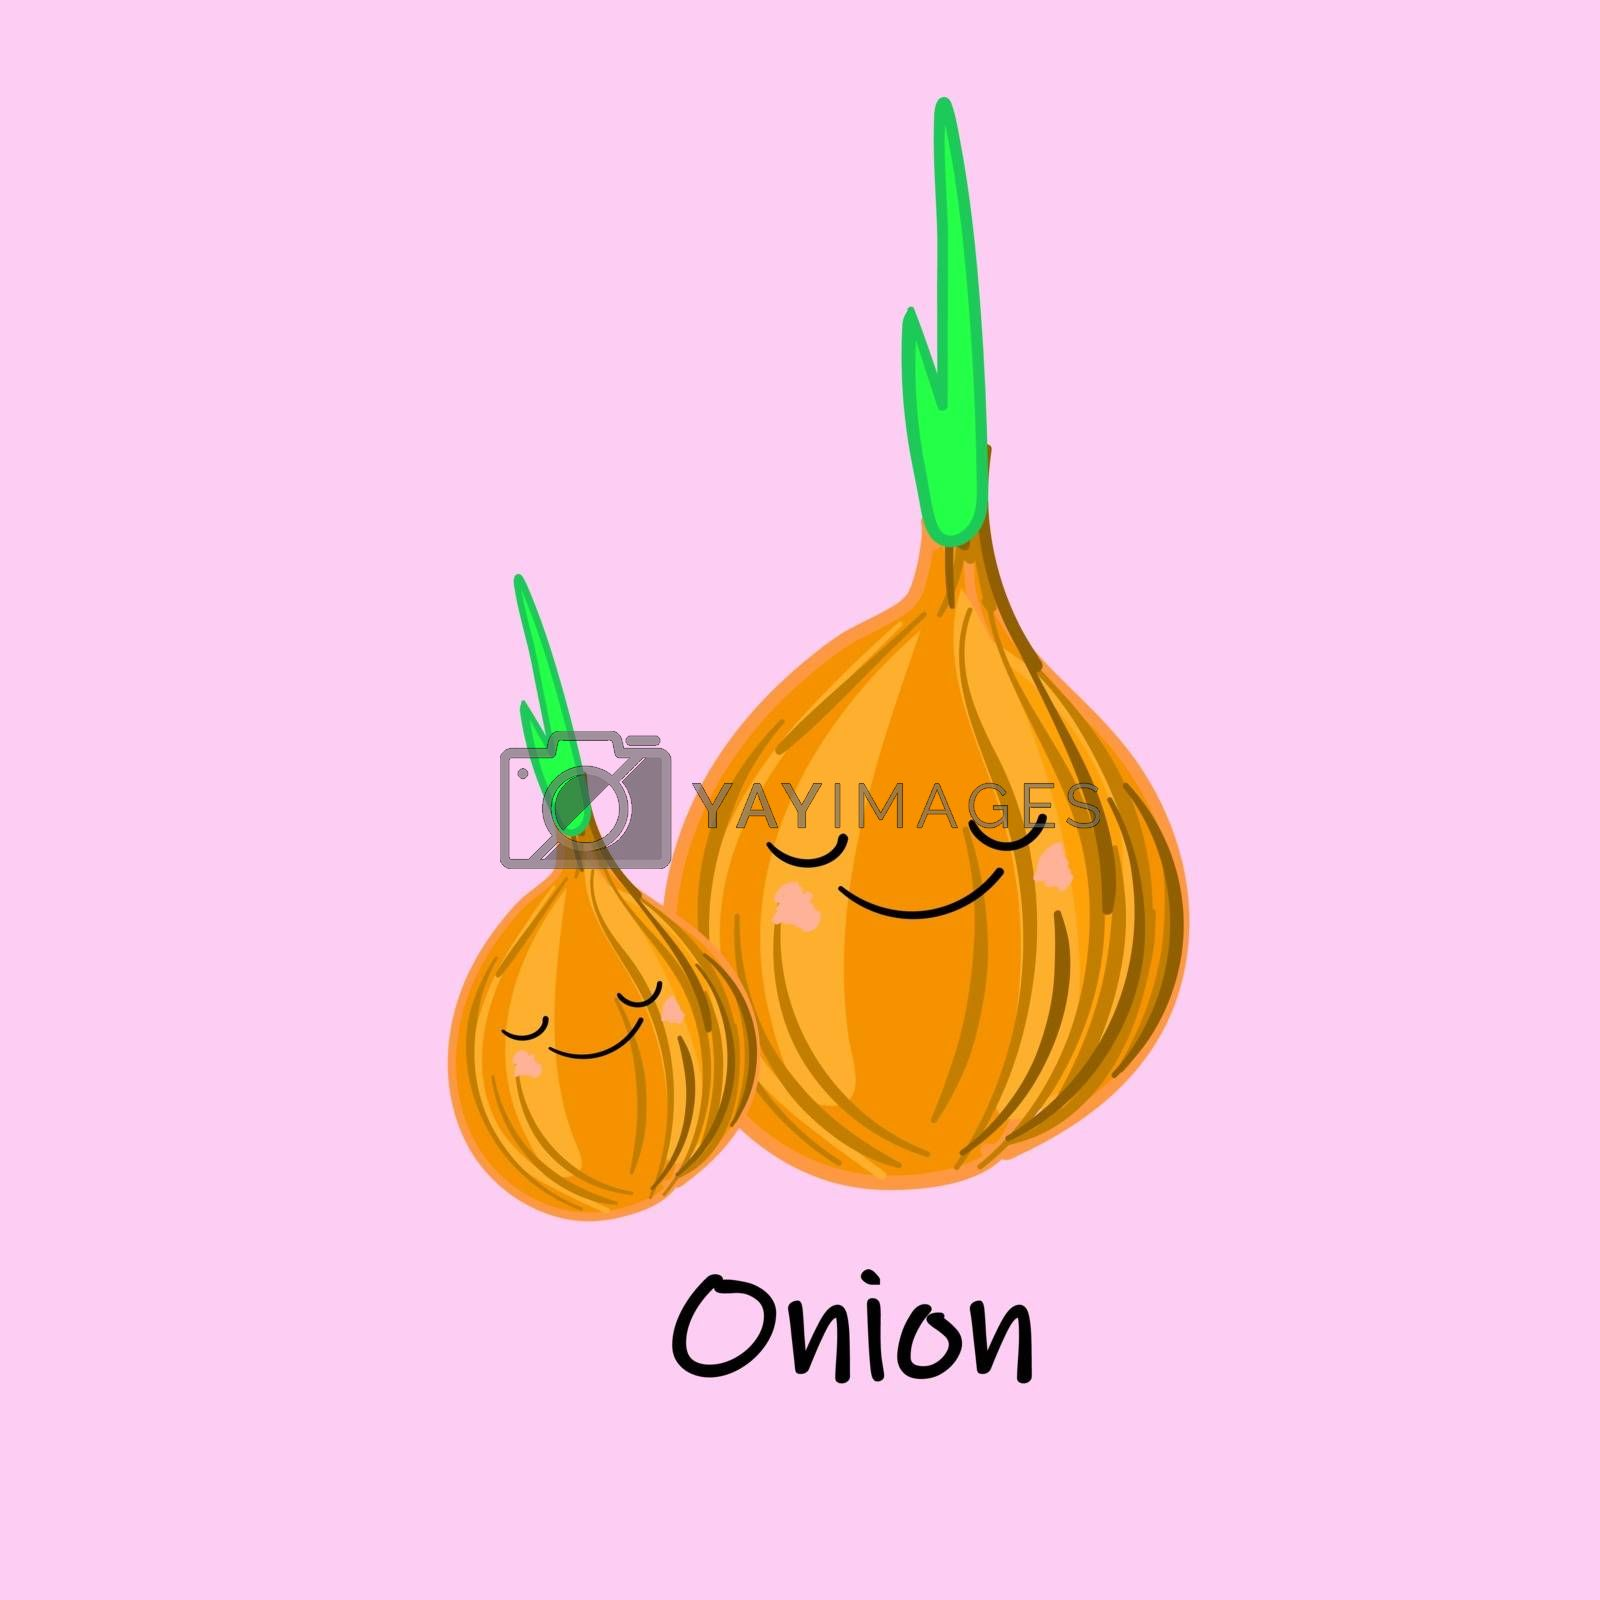 cute cartoon vegetables with smiles on faces and emotions. CARDS FOR CHILDREN'S EDUCATION.Cute vegetable character. by bosonya